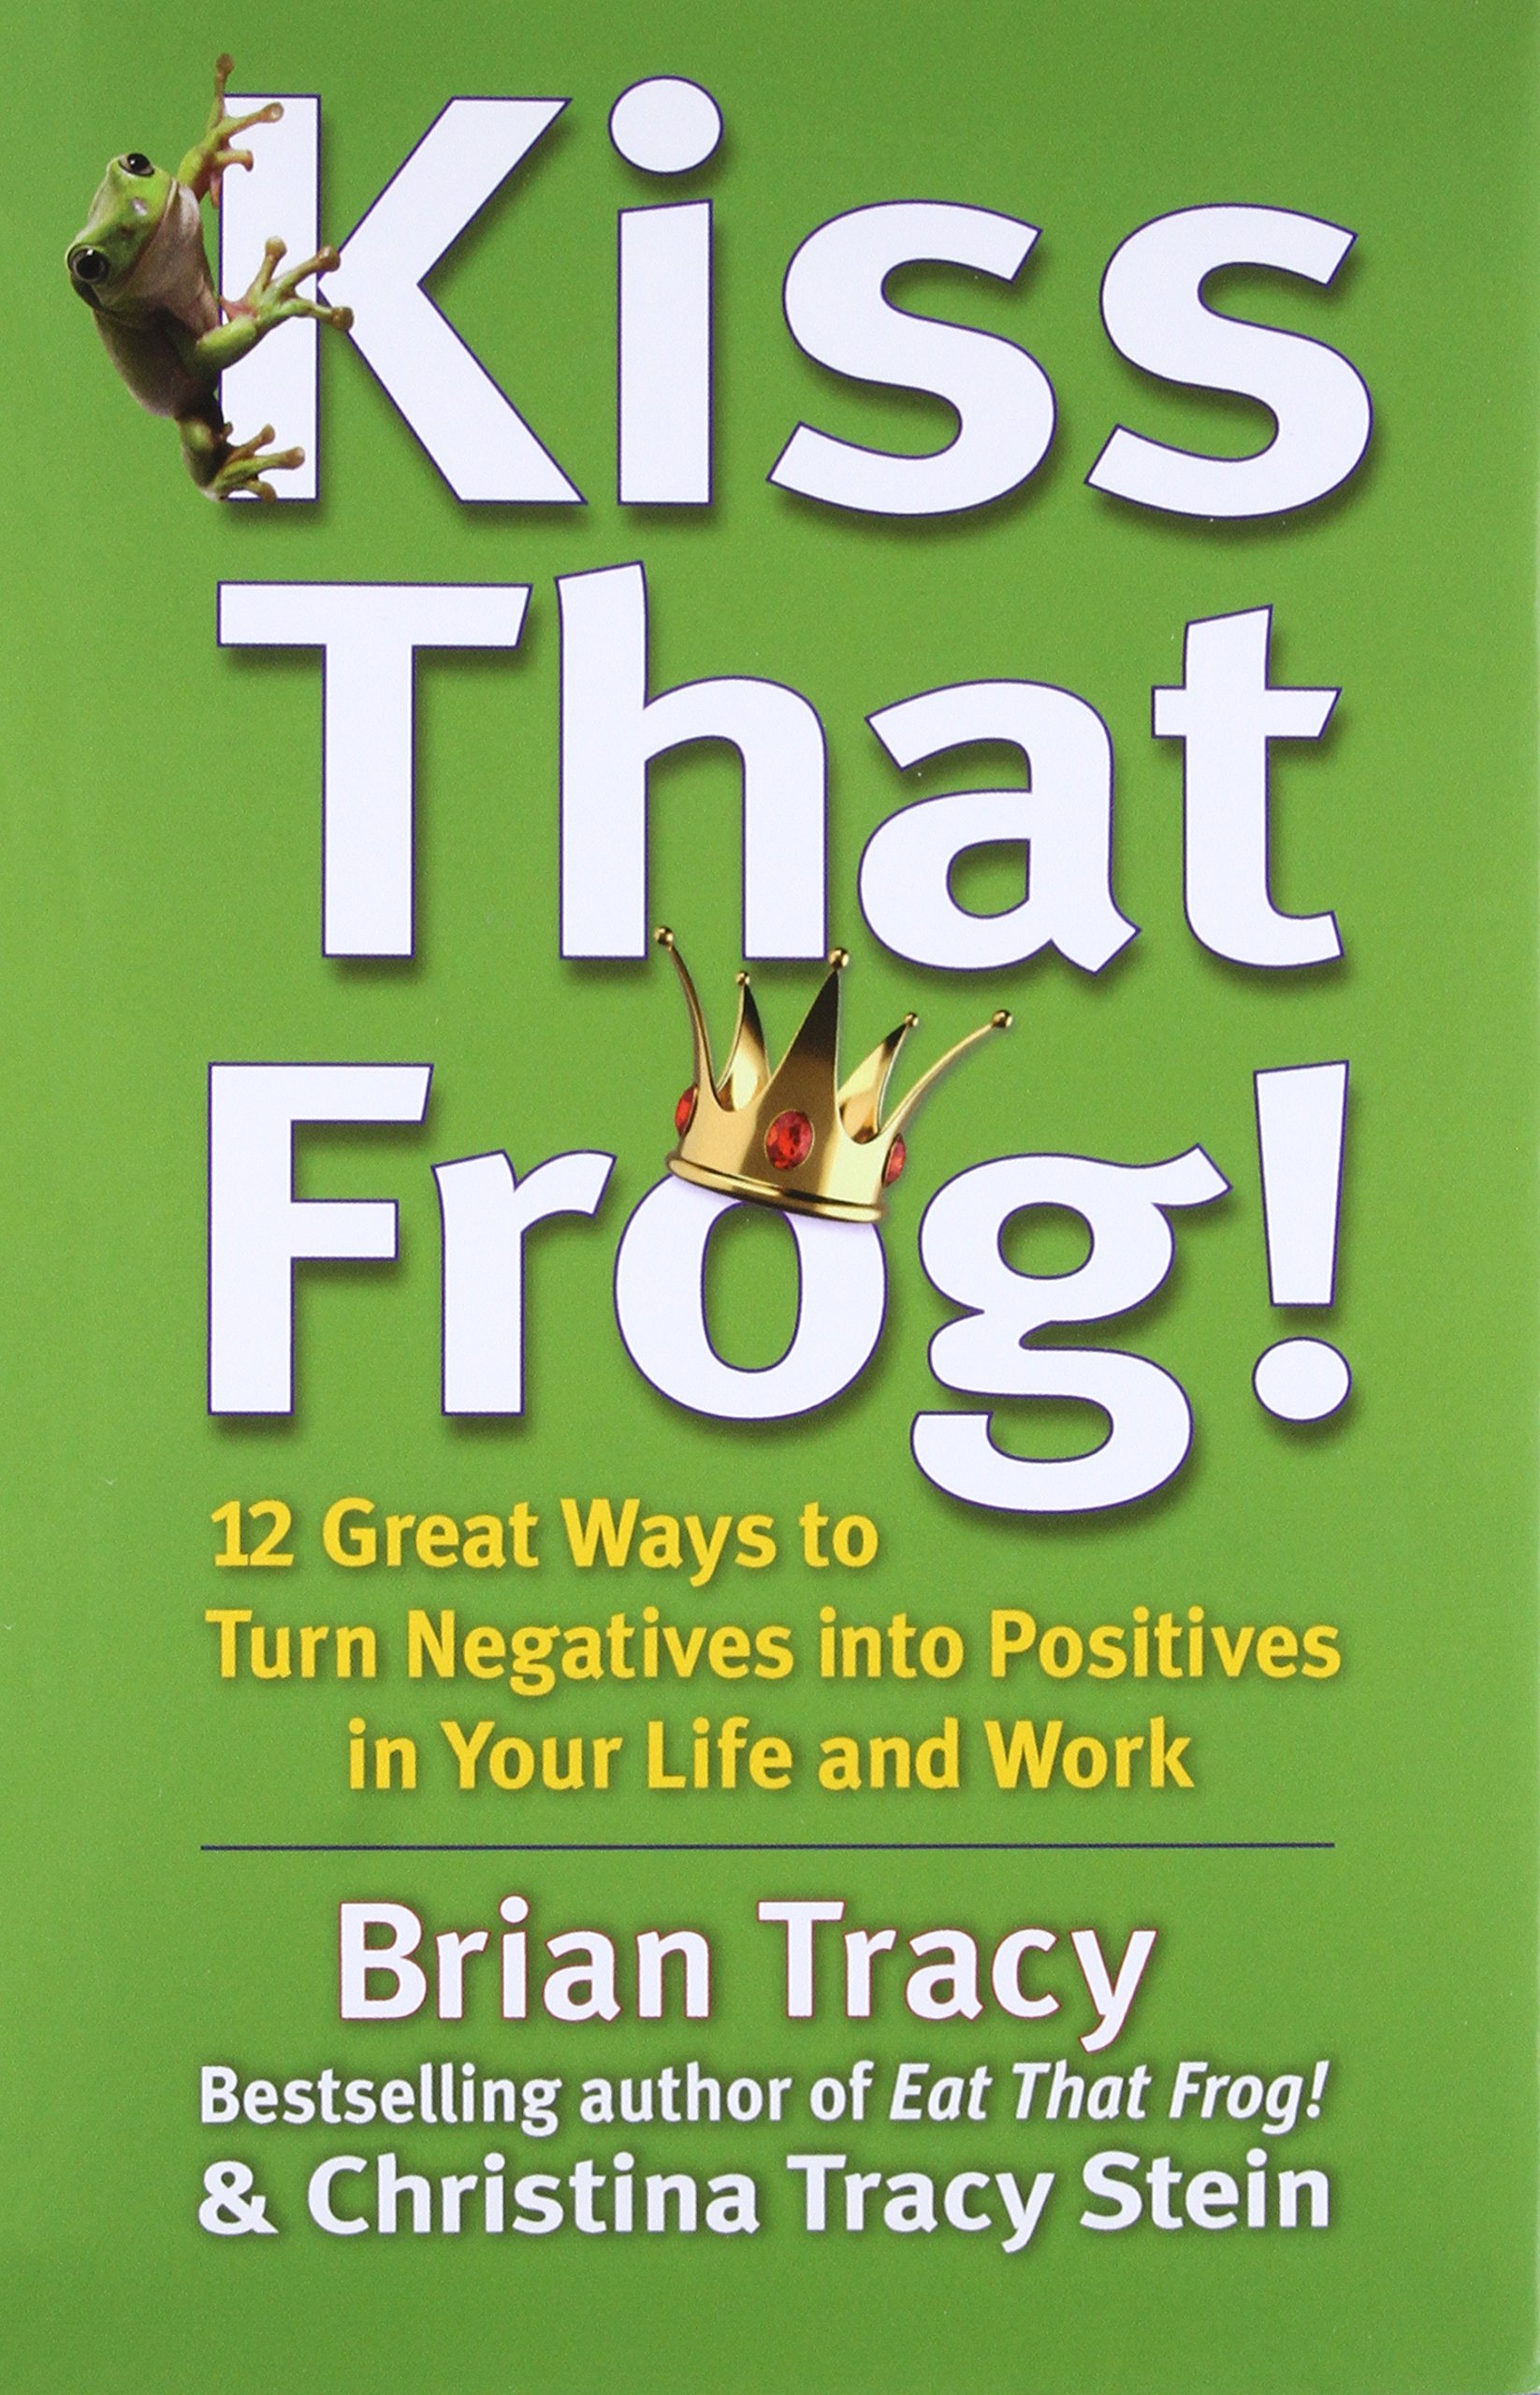 Kiss That Frog!: 12 Great Ways to Turn Negatives into Positives in Your  Life and Work: Brian Tracy, Christina Tracy Stein: 9781609942809:  Amazon.com: Books